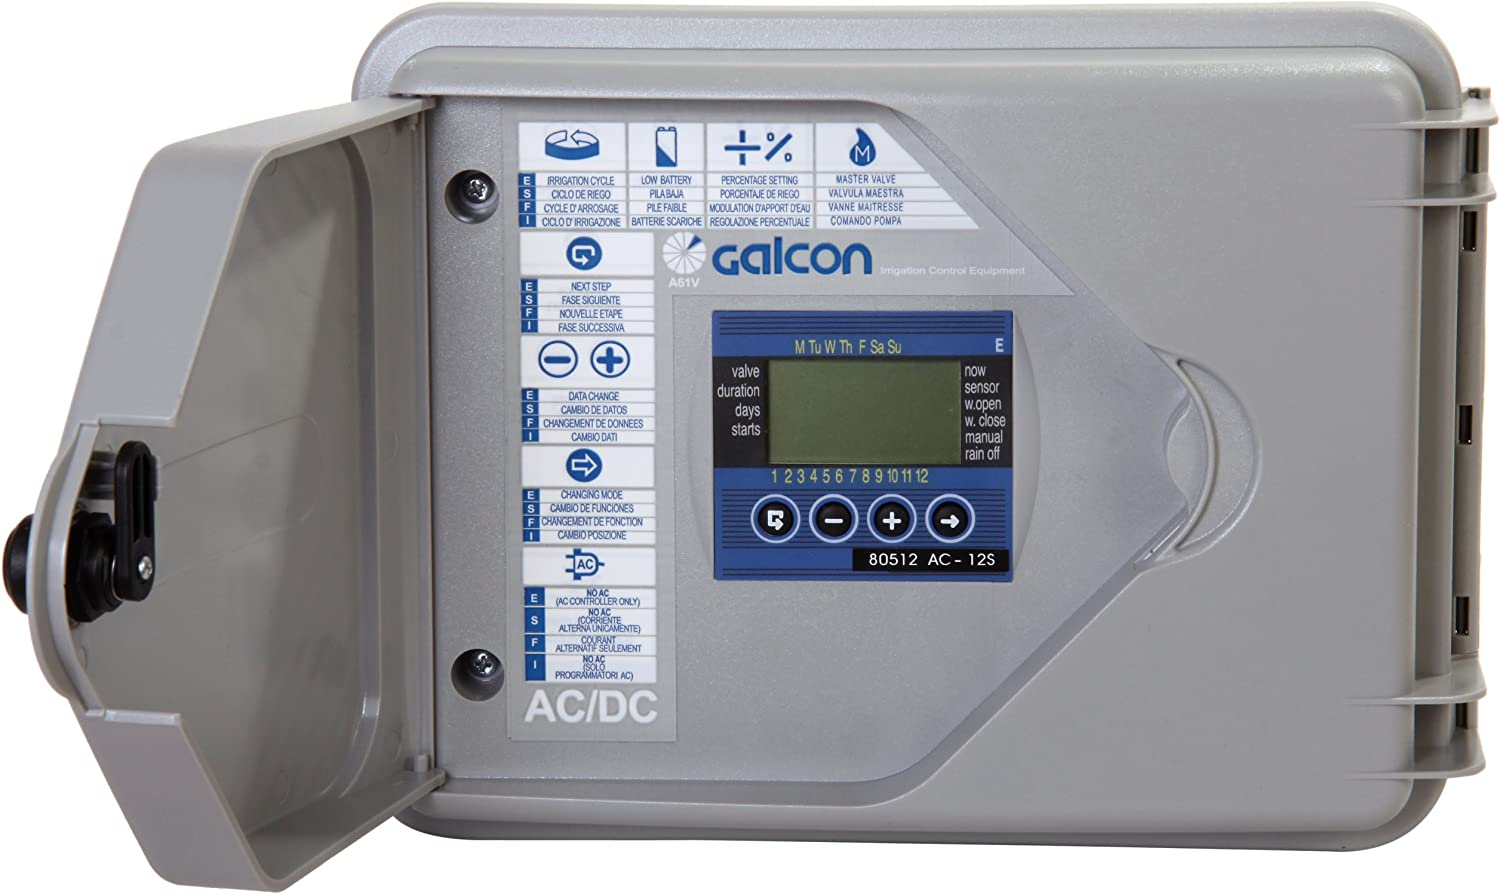 Galcon 80512S AC-12S 12-Station Indoor Or Outdoor Irrigatin Controller